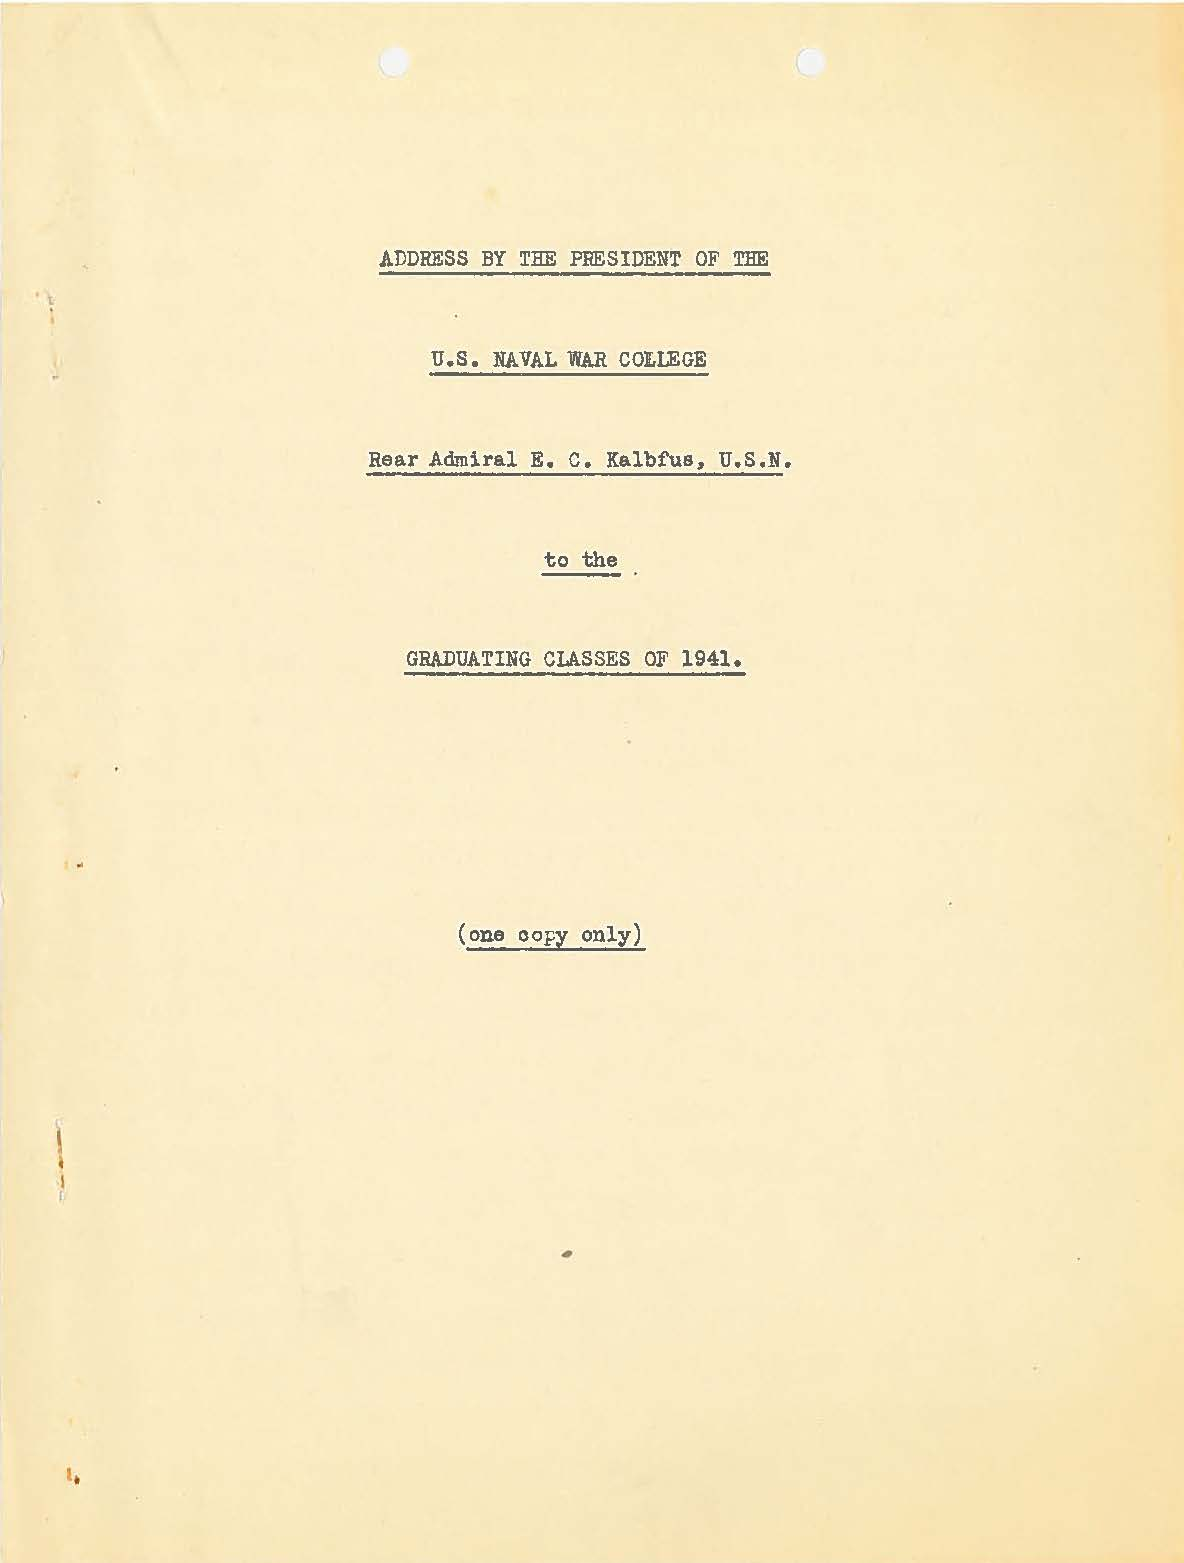 Address by NWC President to graduating classes of 1941, Edward C. Kalbfus